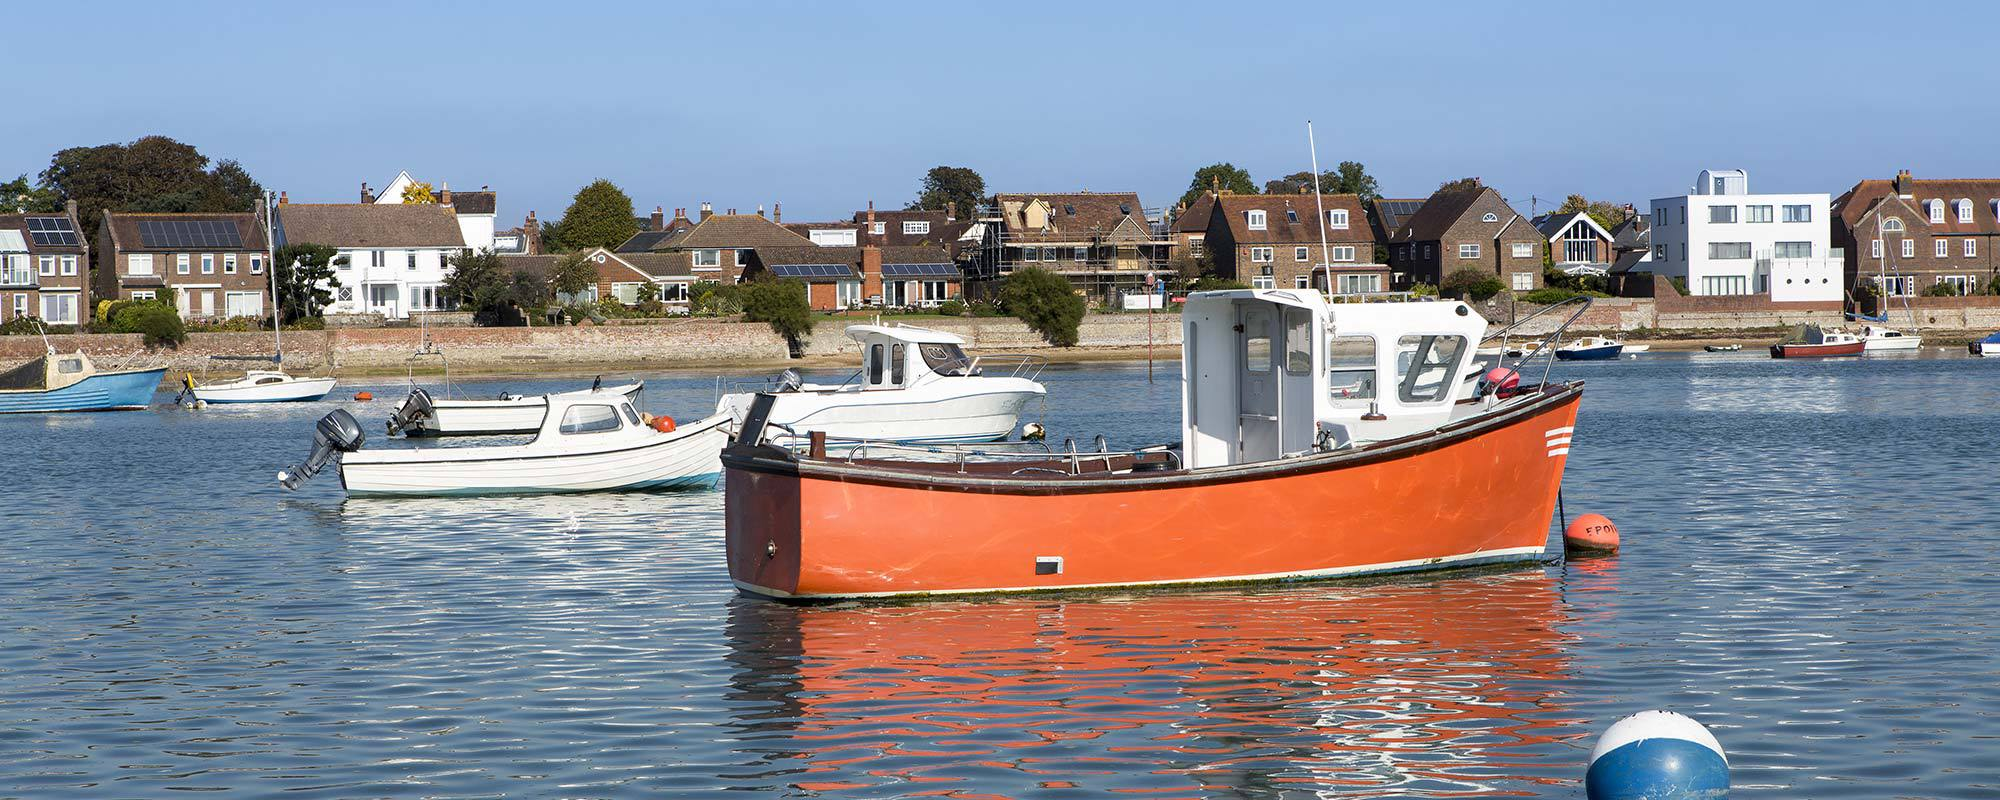 Red coloured fishing boat standing in still water in Chichester